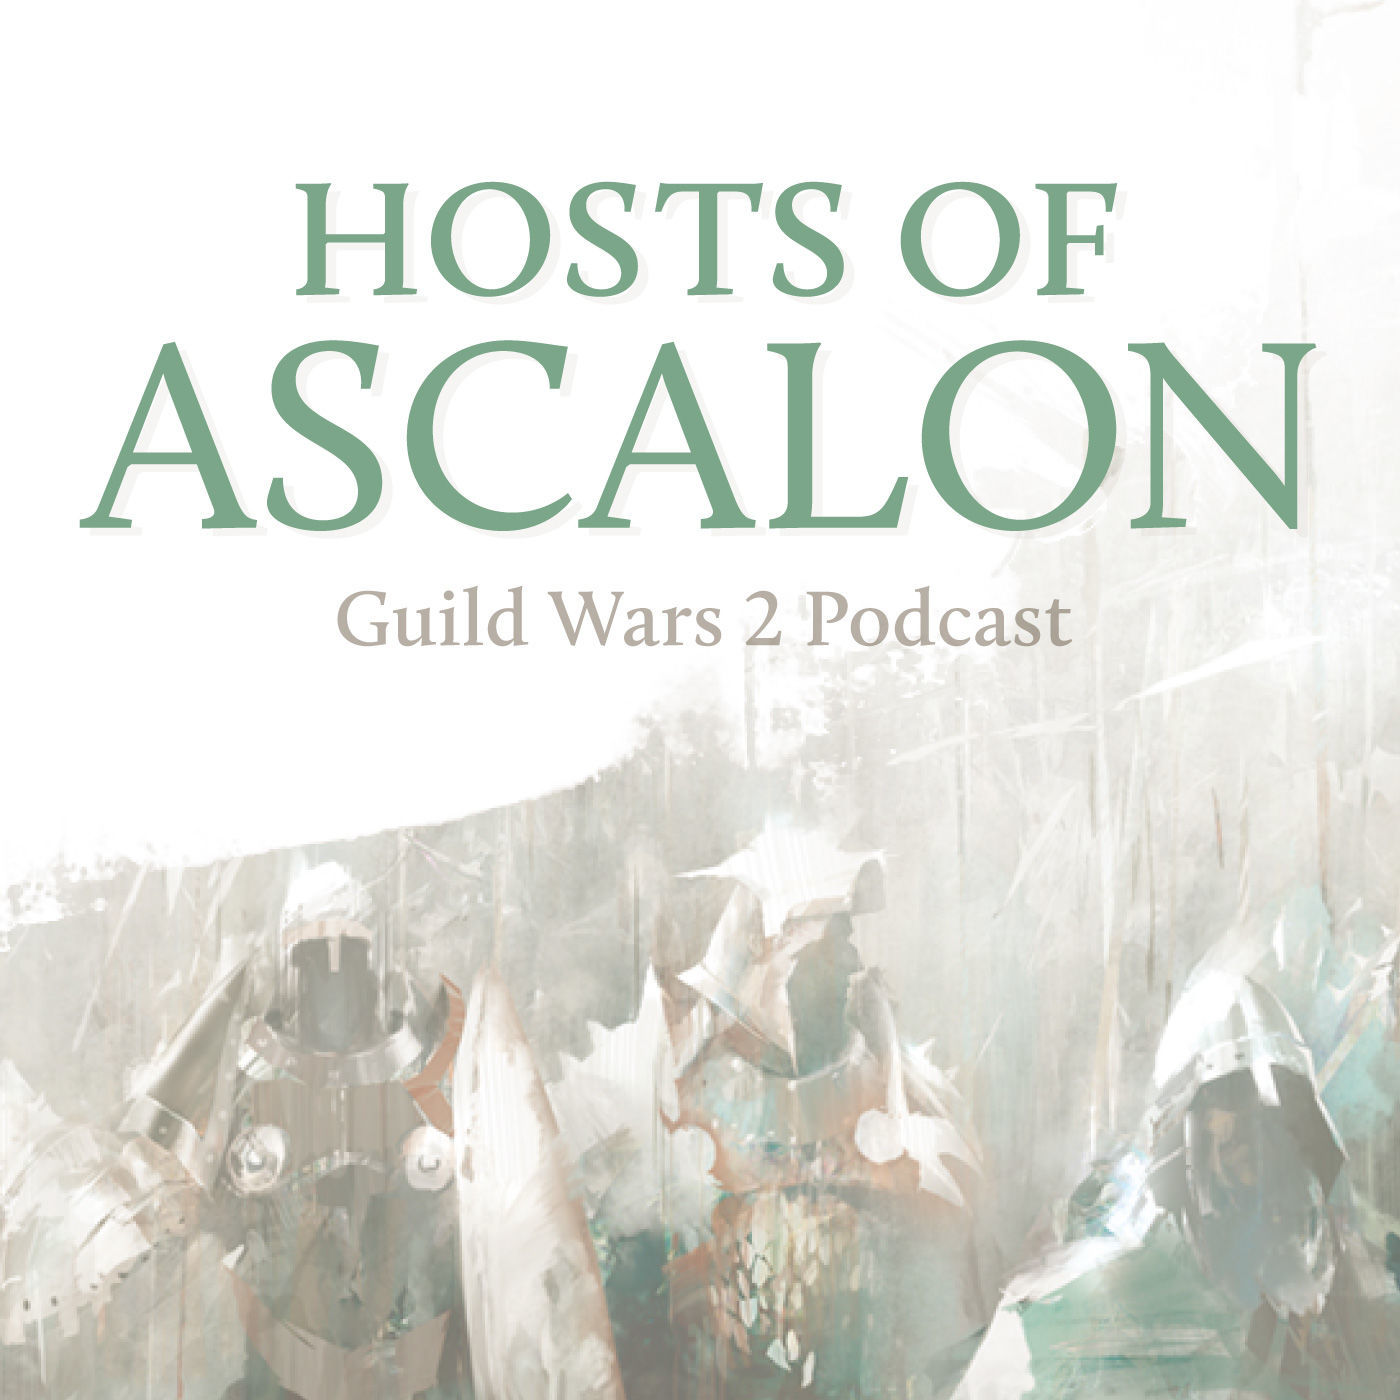 Hosts of Ascalon - Guild Wars 2 Podcast